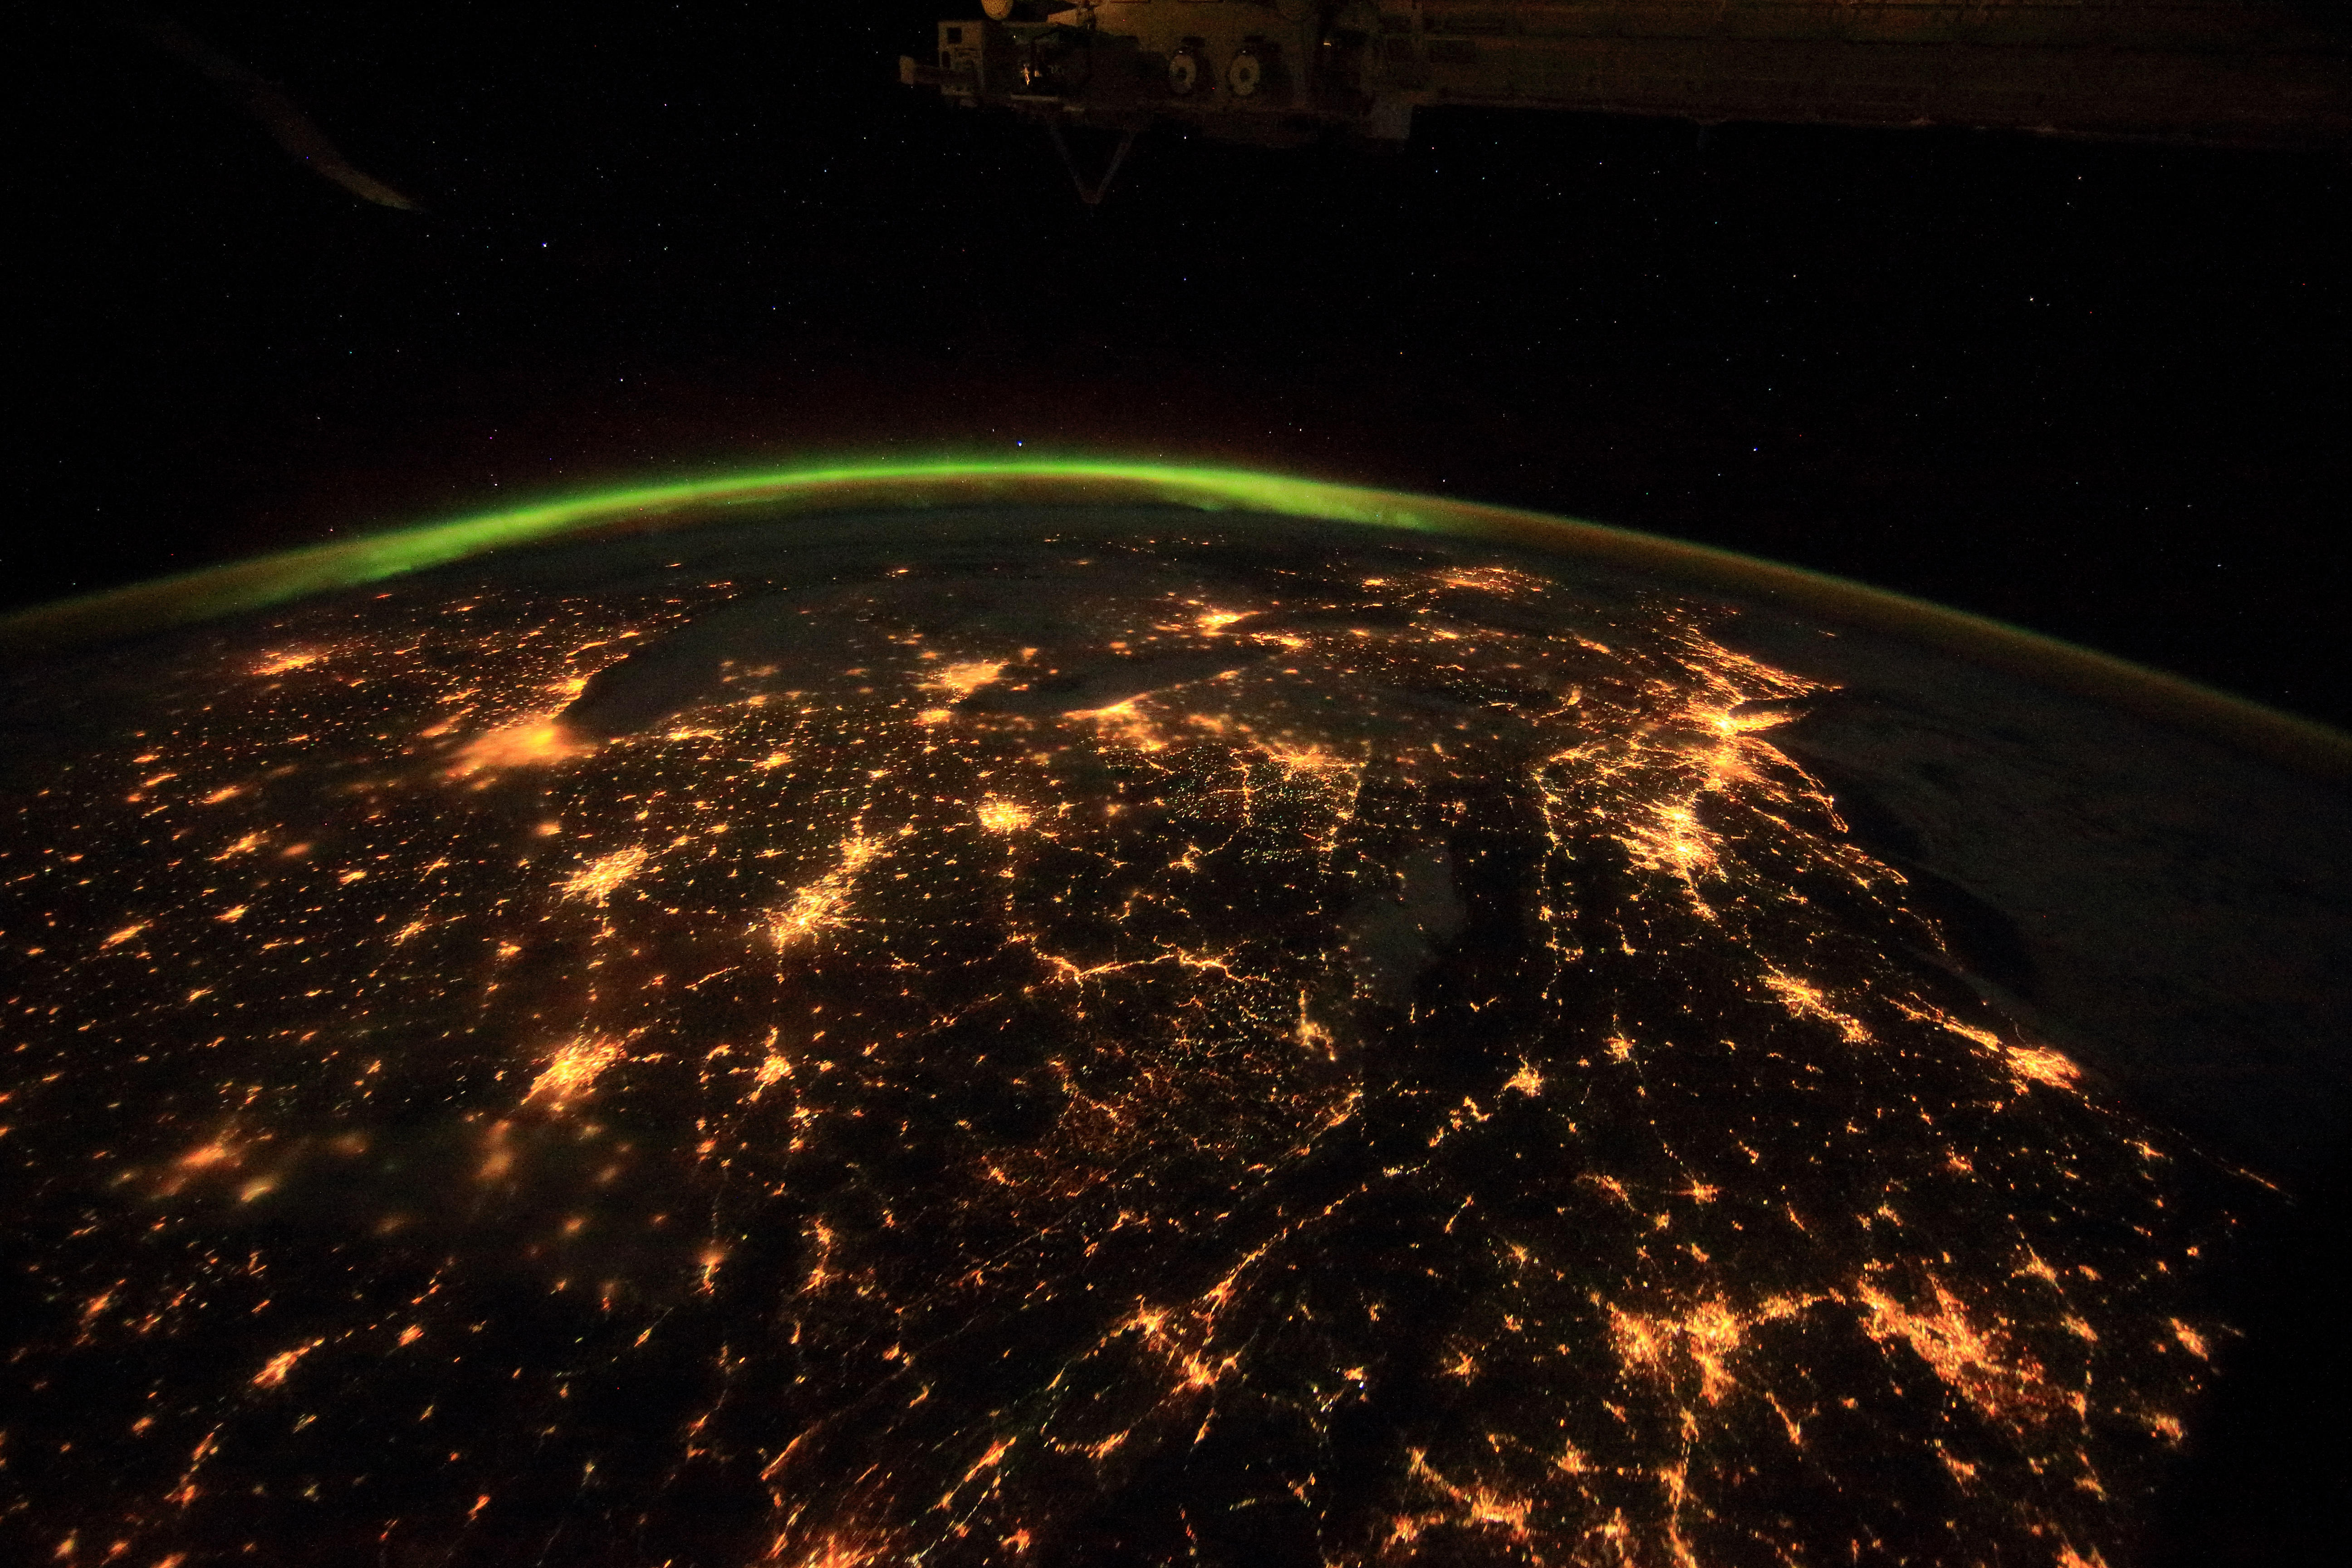 The entire northeast of Canada, the United States and beyond as seen from the International Space Station.